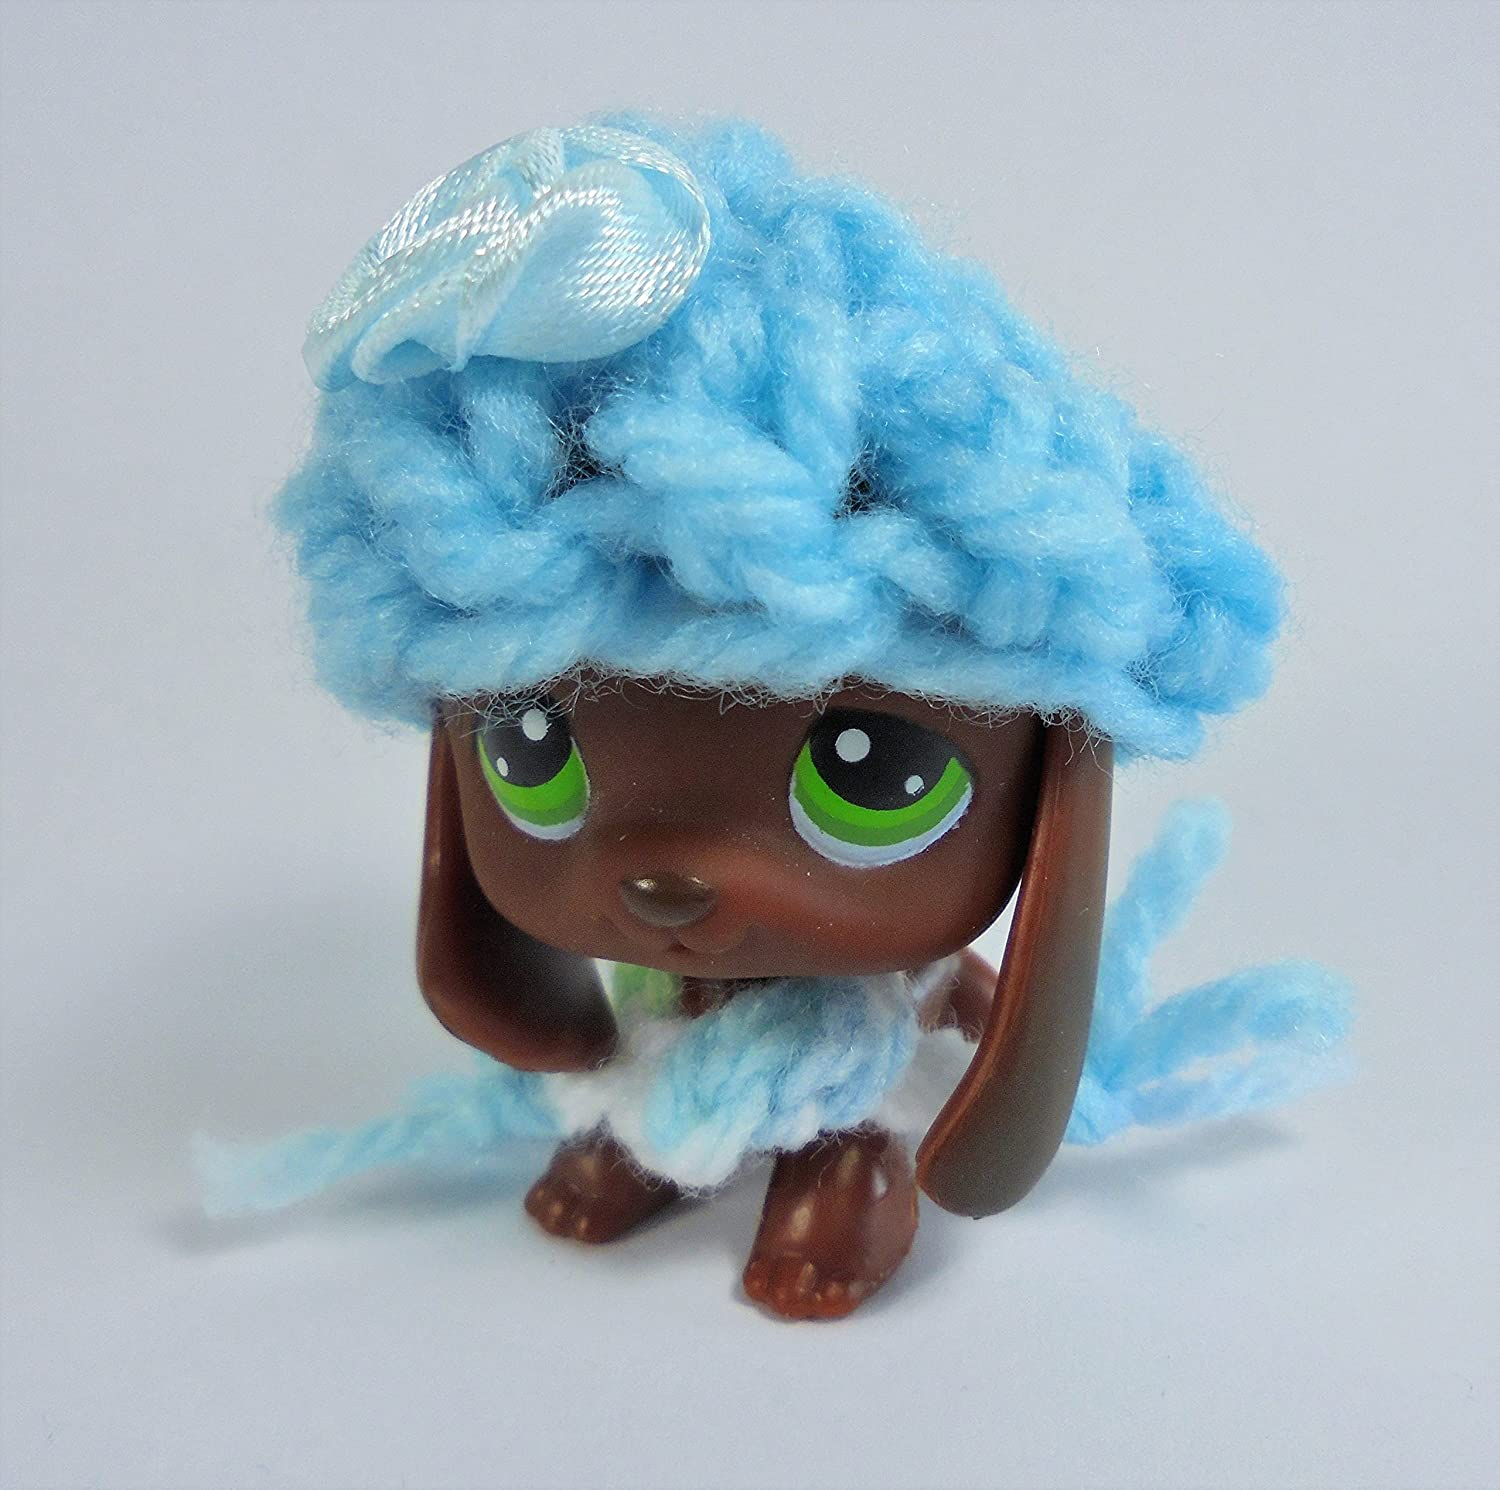 LPS Accessories Clothes Littlest Pet Shop Lot Winter 1 Crocheted Hat + 1 Crocheted Scarf+ 1 Random Pet in 1 Gift Bag Handmade Custom Outfit